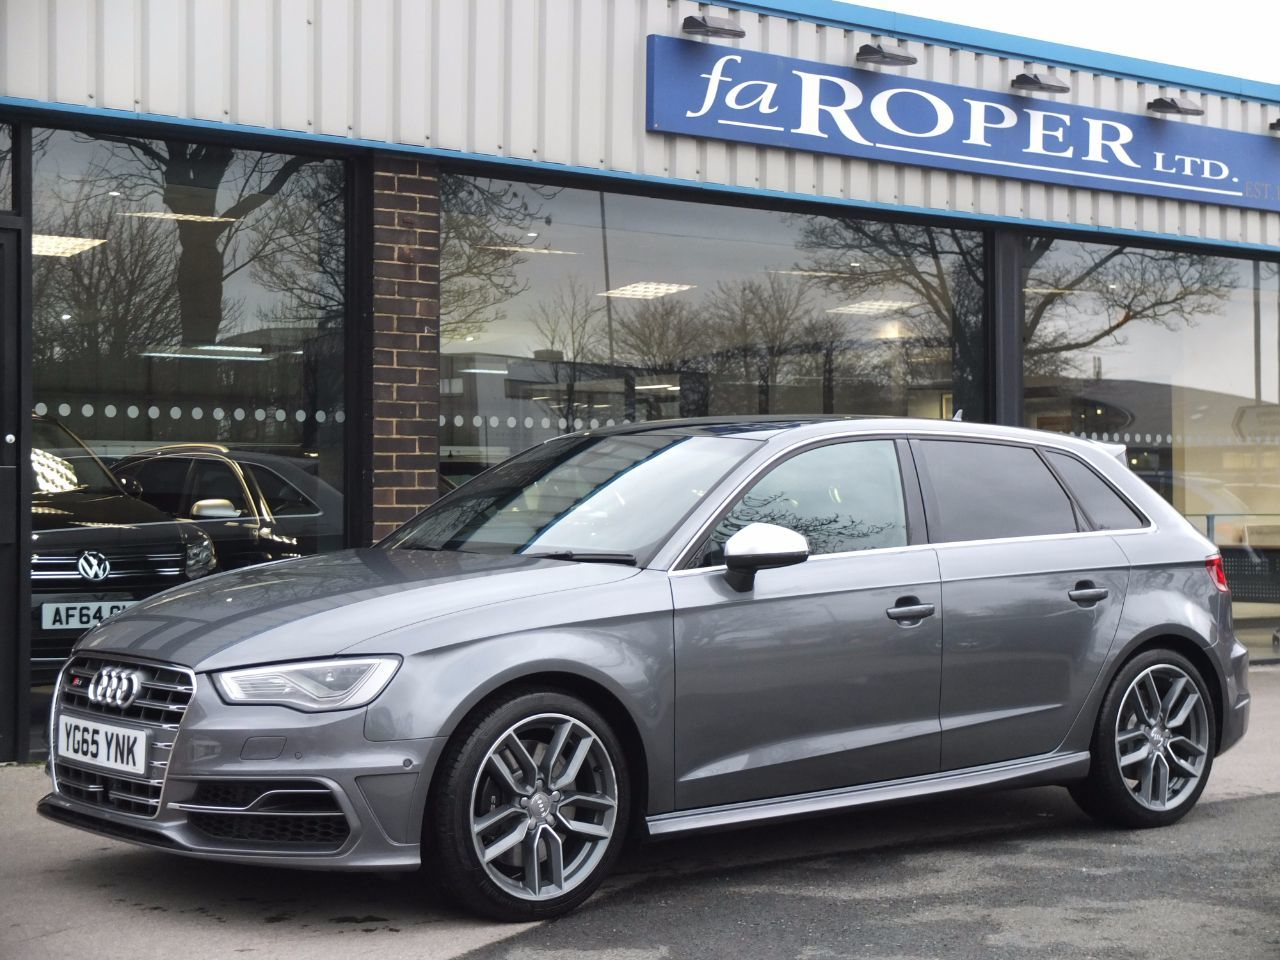 Audi A3 S3 2.0 TFSI quattro Sportback 300ps S Tronic Hatchback Petrol Monsoon Grey Metallic